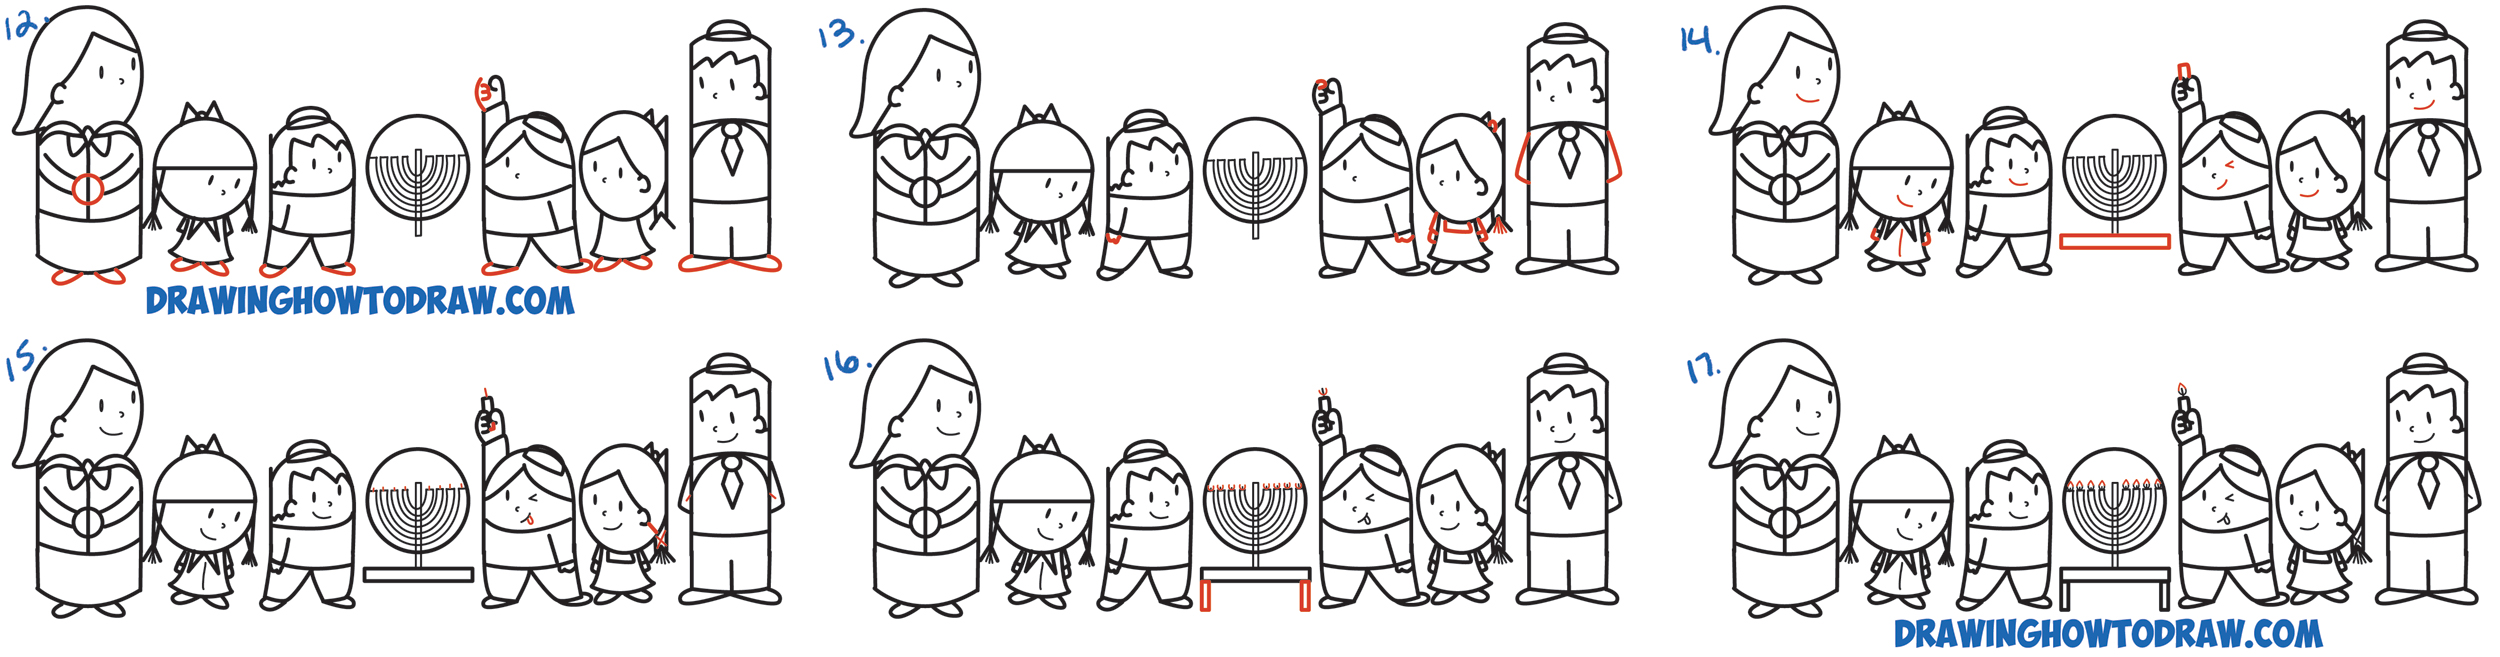 Learn How to Draw Cartoon Jewish Kids Lighting a Menorah for Hanukkah / Chanukah Word Cartoon Simple Steps Drawing Lesson